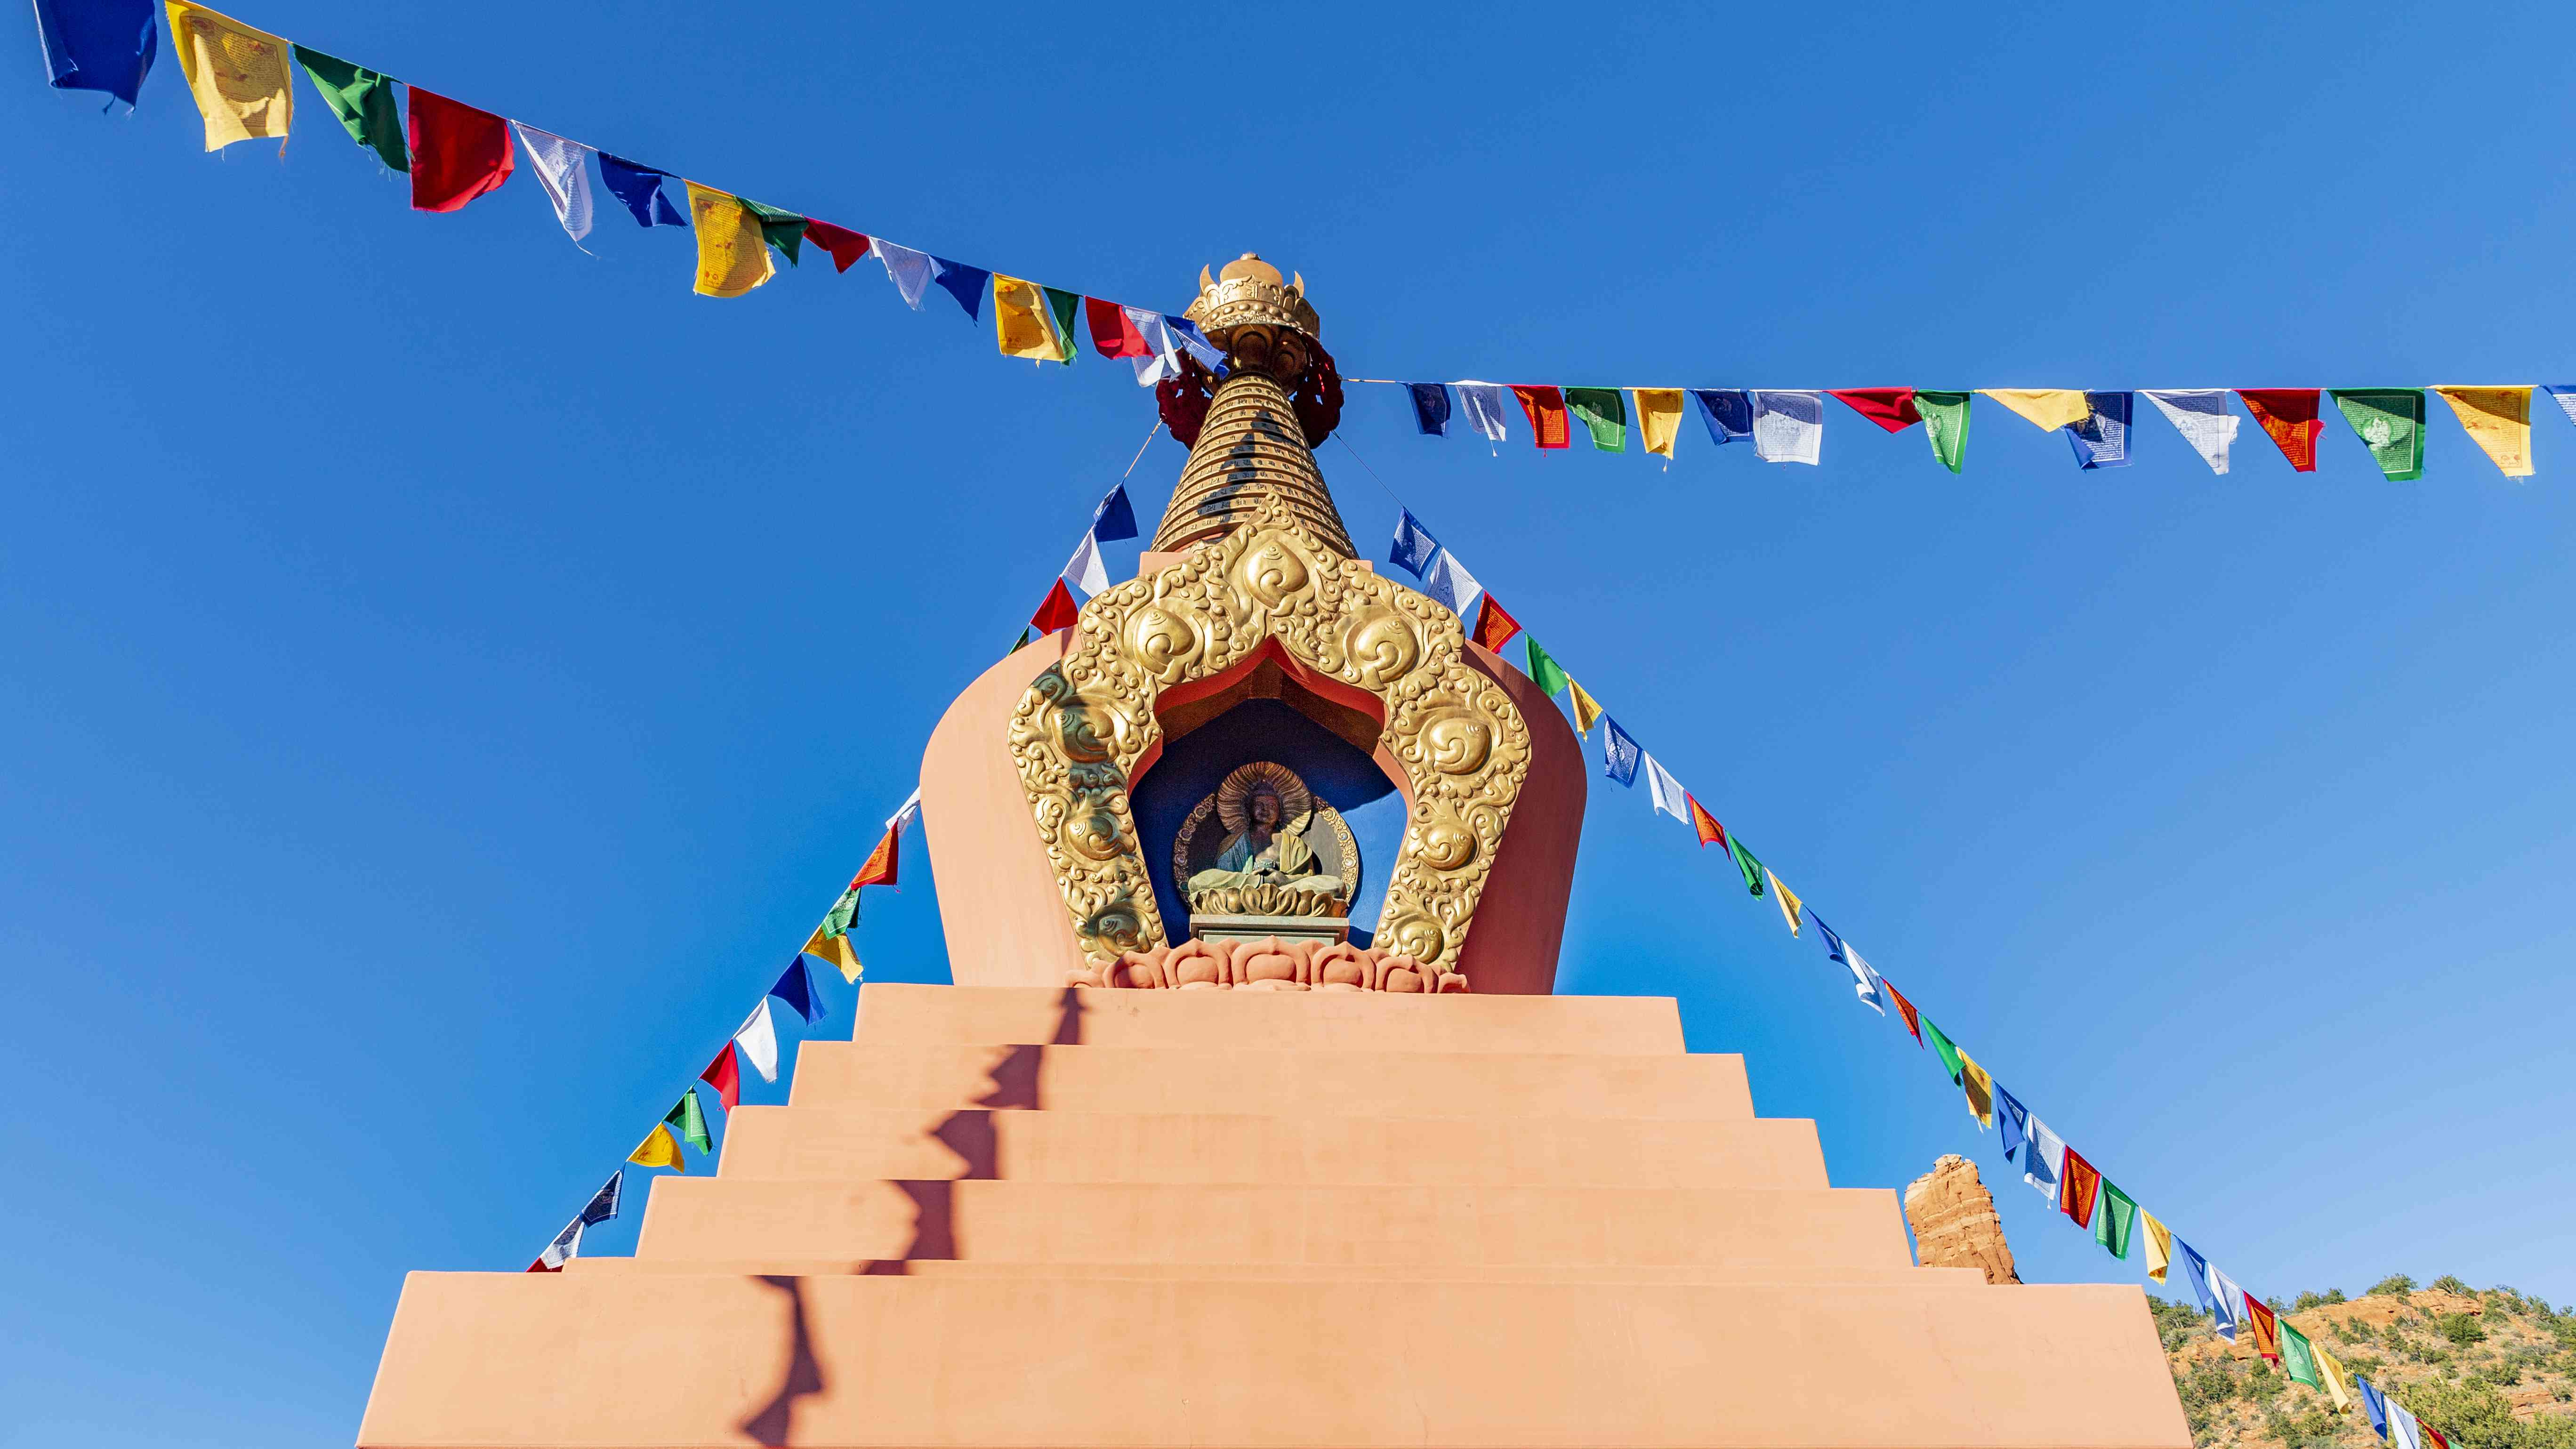 low angle view of a Buddhist stupa with colorful flags in Sedona, Arizona